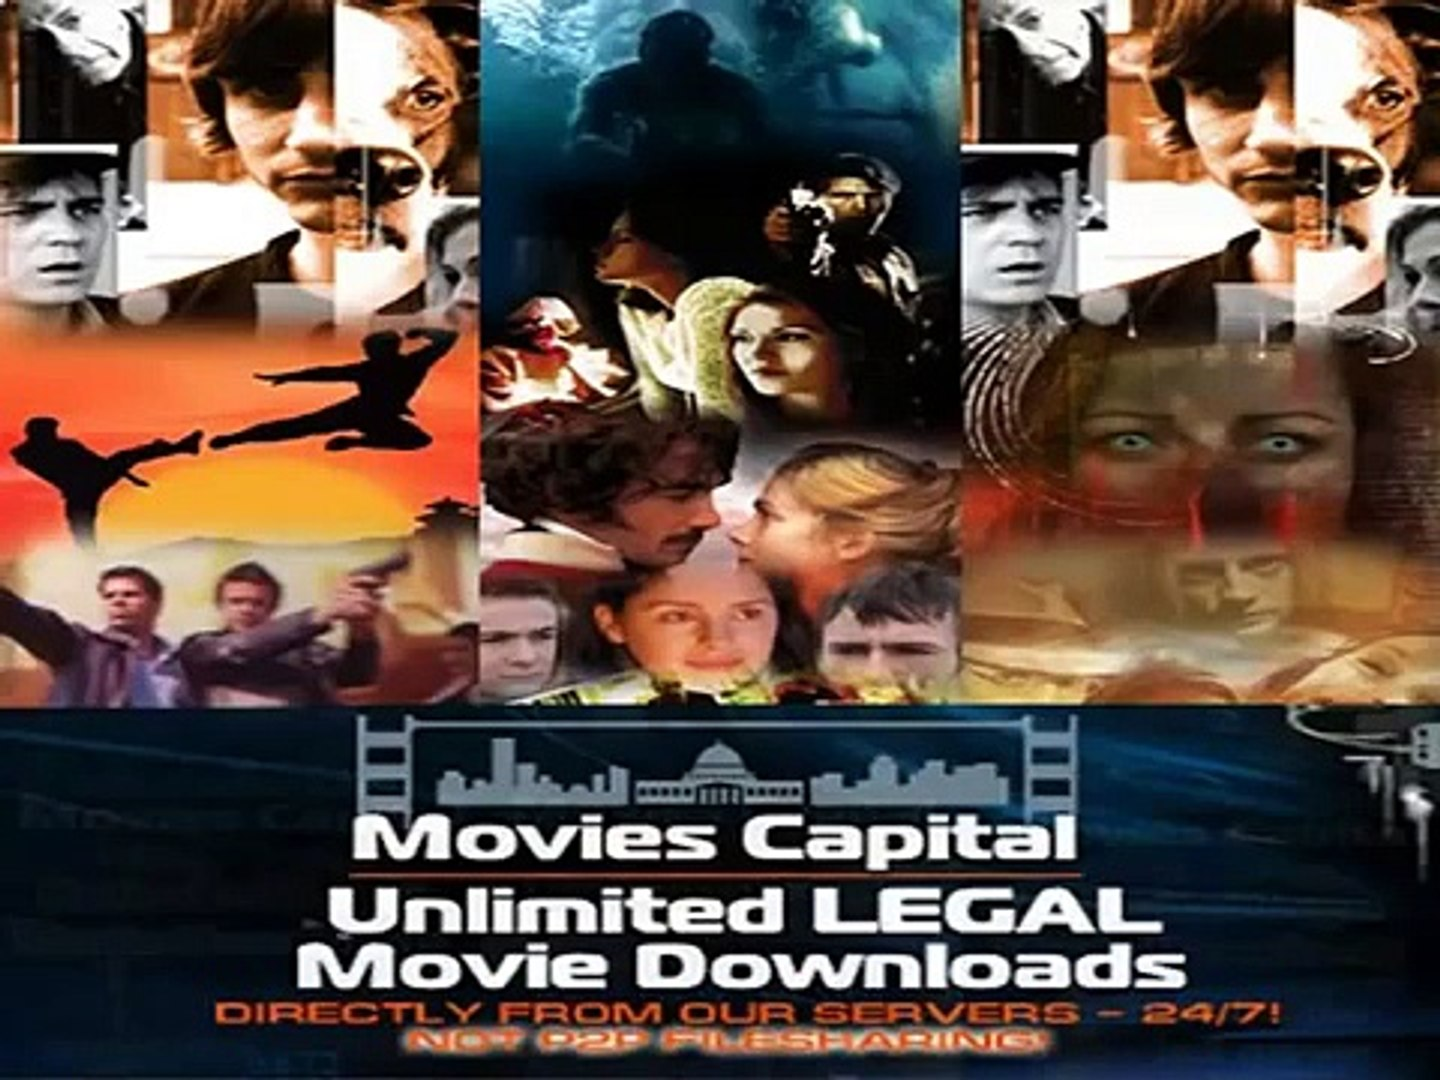 Movies Capital Review - Download Movies To Your PC Without Worry